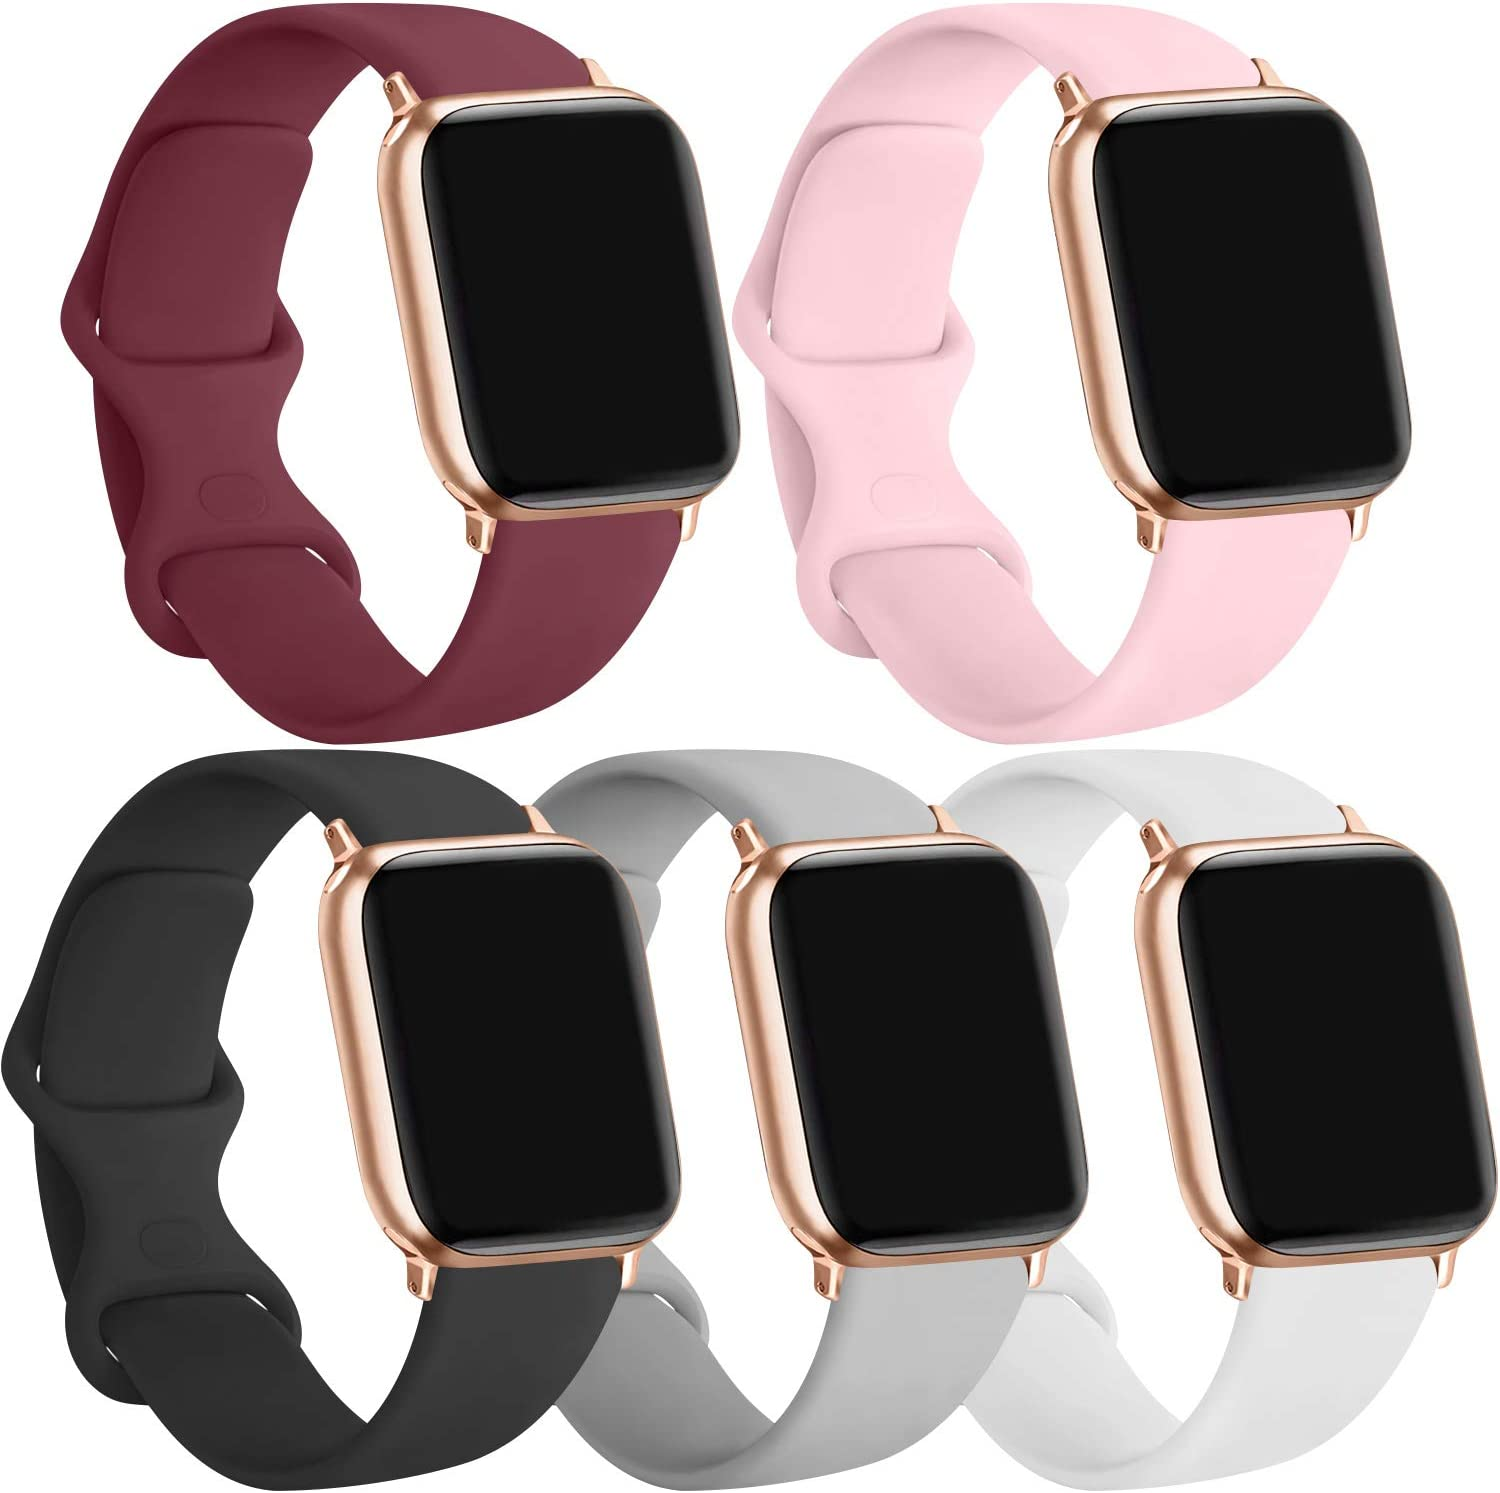 [5 Pack] Silicone Bands Compatible for Apple Watch Bands 38mm 40mm, Sport Band Compatible for iWatch Series 6 5 4 3 SE, Wine red/Pink/Black/Gray/White, 38mm/40mm-S/M